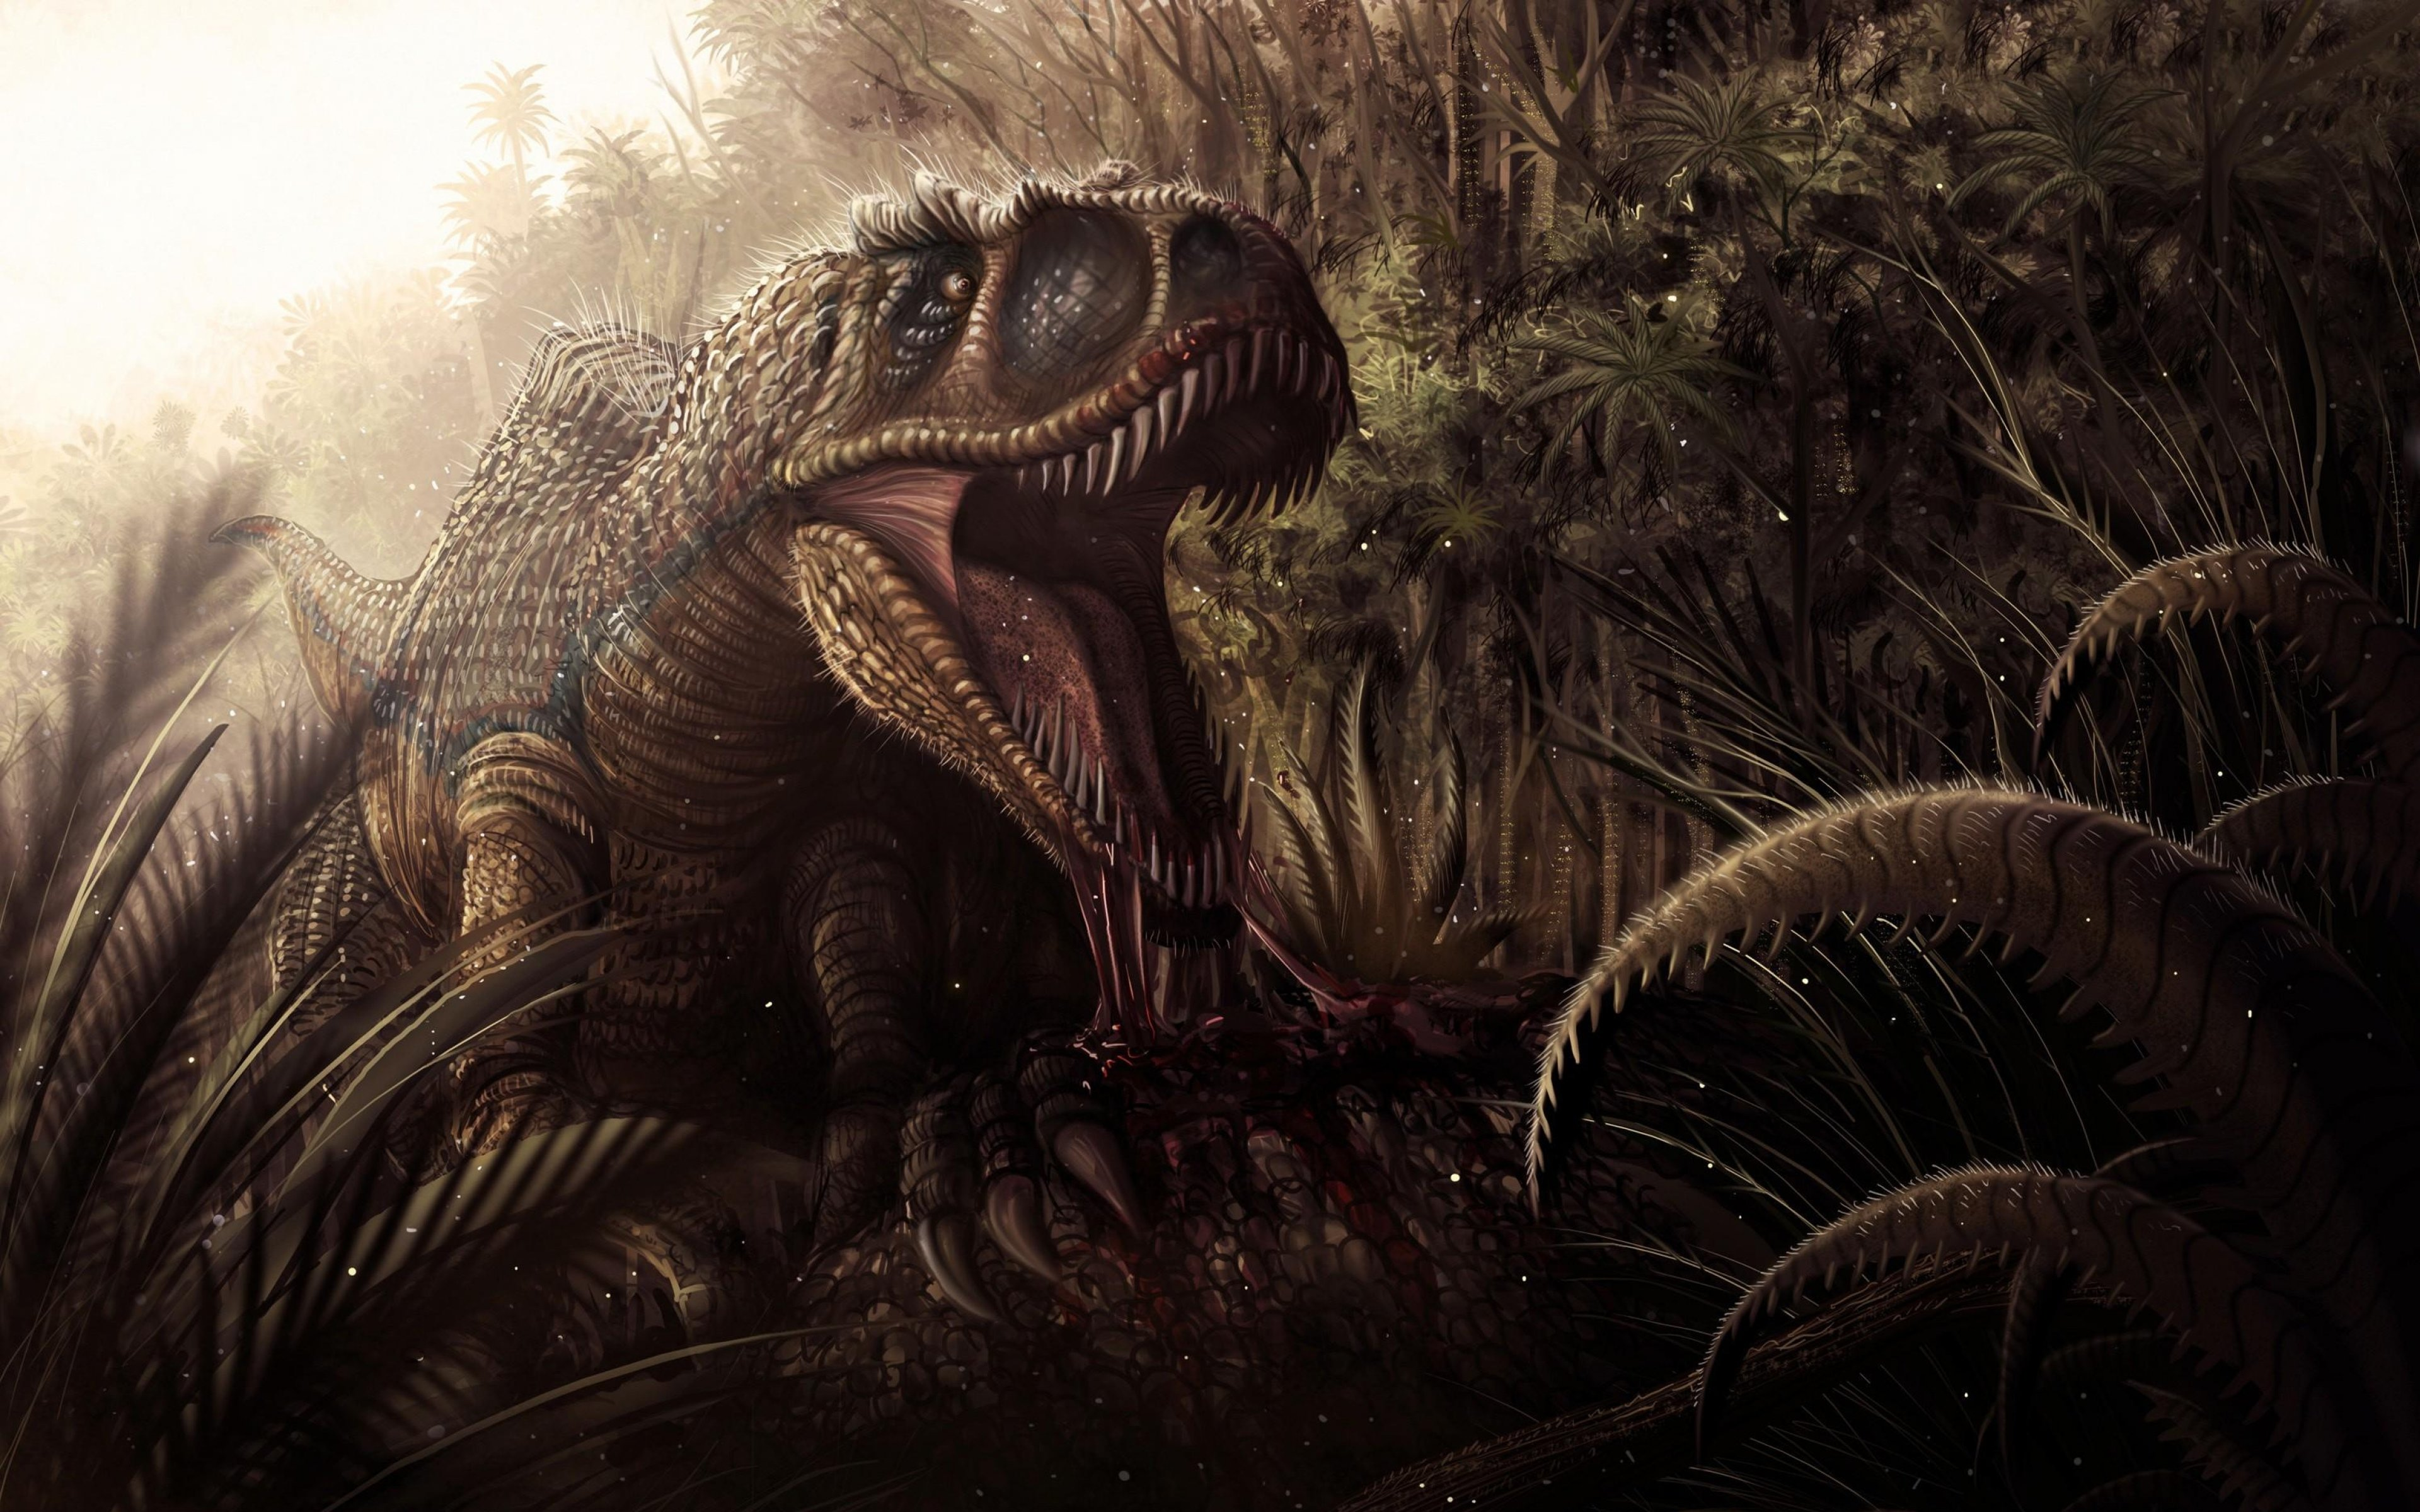 Best Tyrannosaurus Rex wallpaper ID:73870 for High Resolution hd 3840x2400 computer